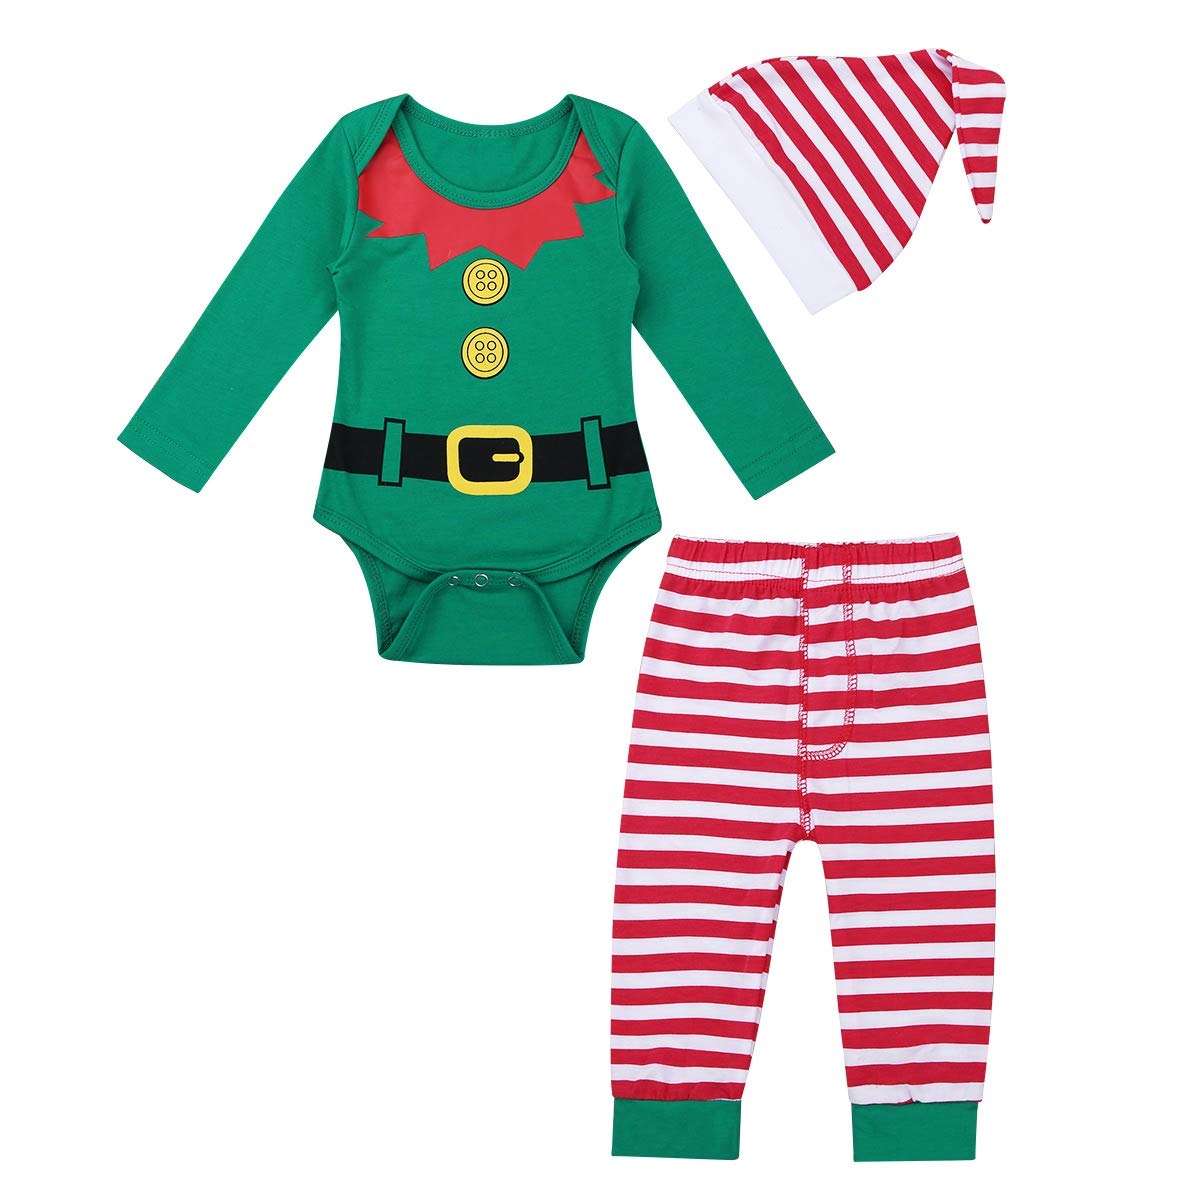 Amazon.com: iiniim Children Girls/Boys Santas Elf Costume Romper Christmas Festive Party Outfits Fancy Dress up: Clothing